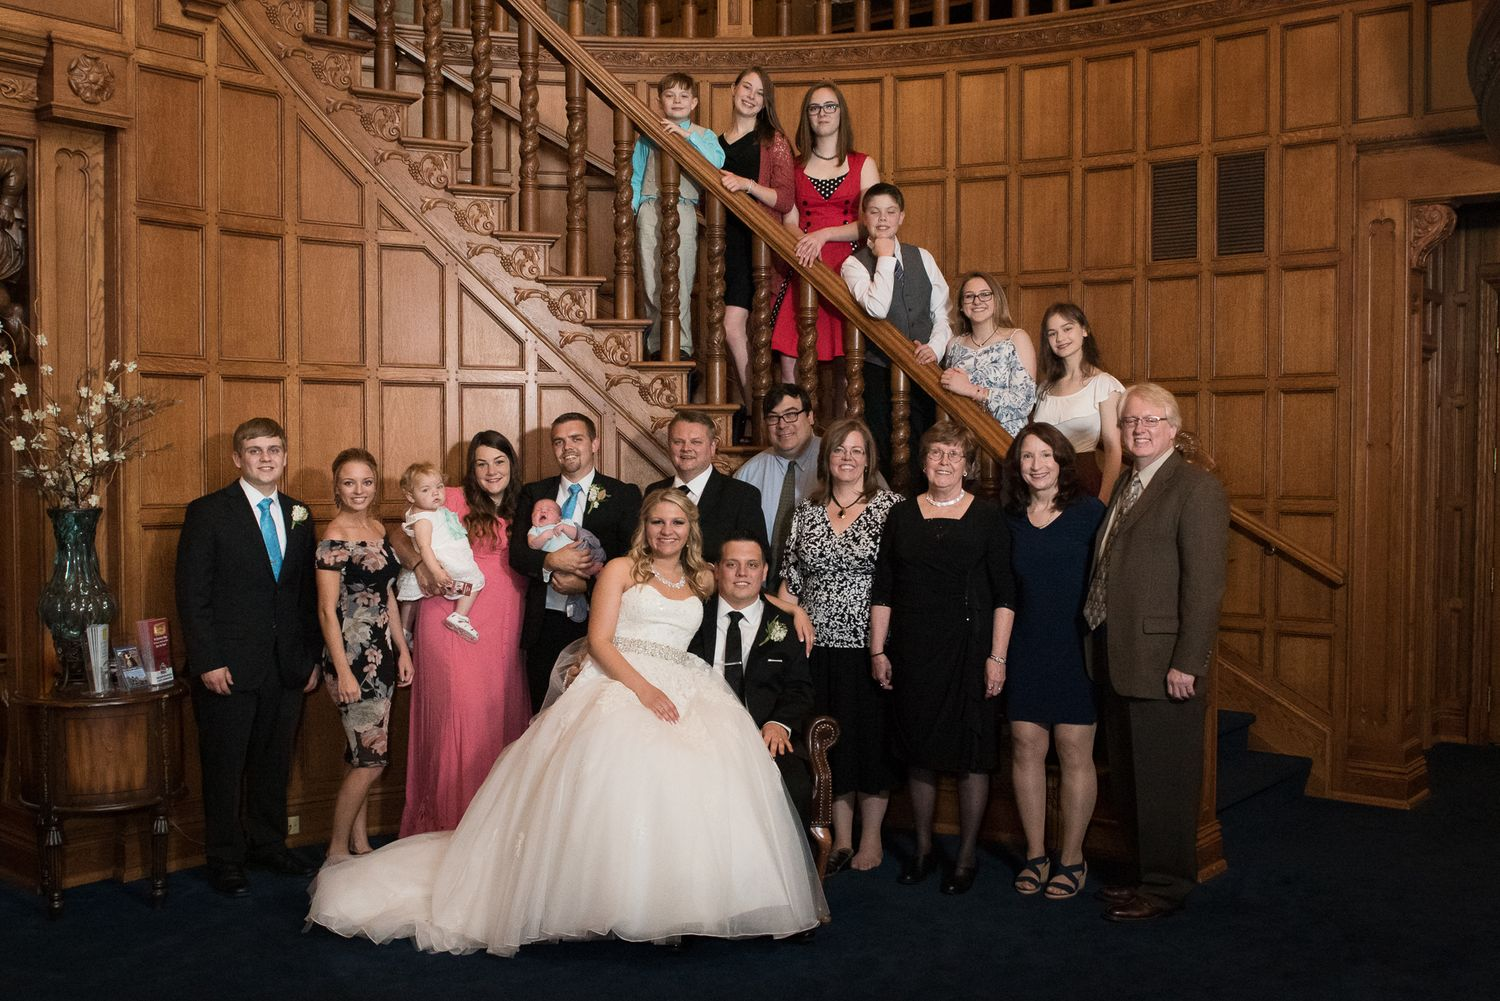 kings court castle lake orion mi wedding phography event photographer